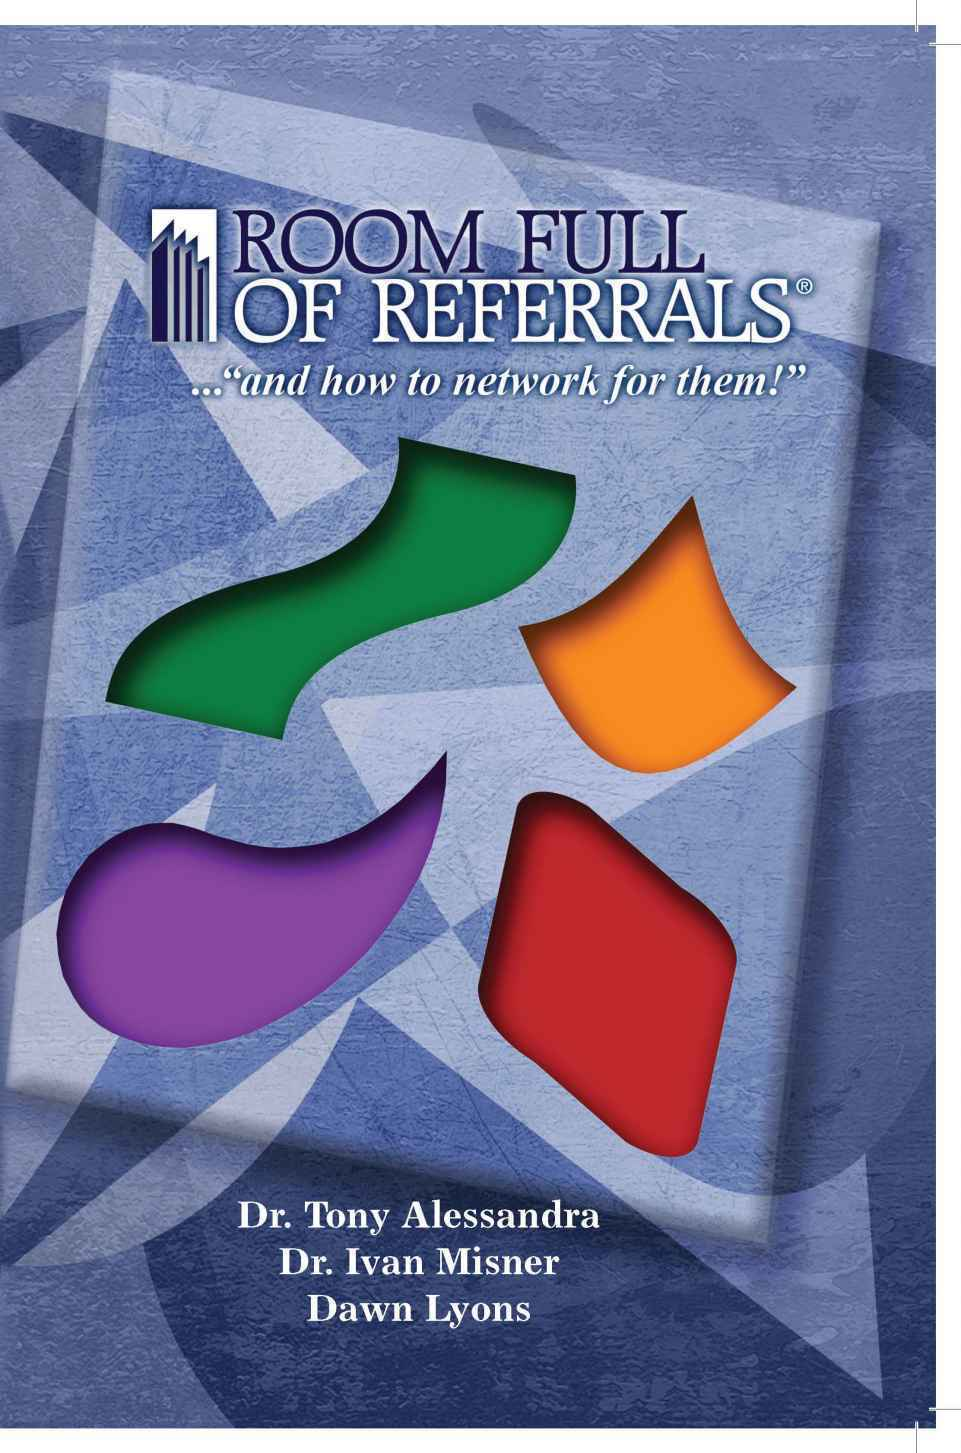 """On December 17, 2012, the book """"Room Full of Referrals"""" was released."""